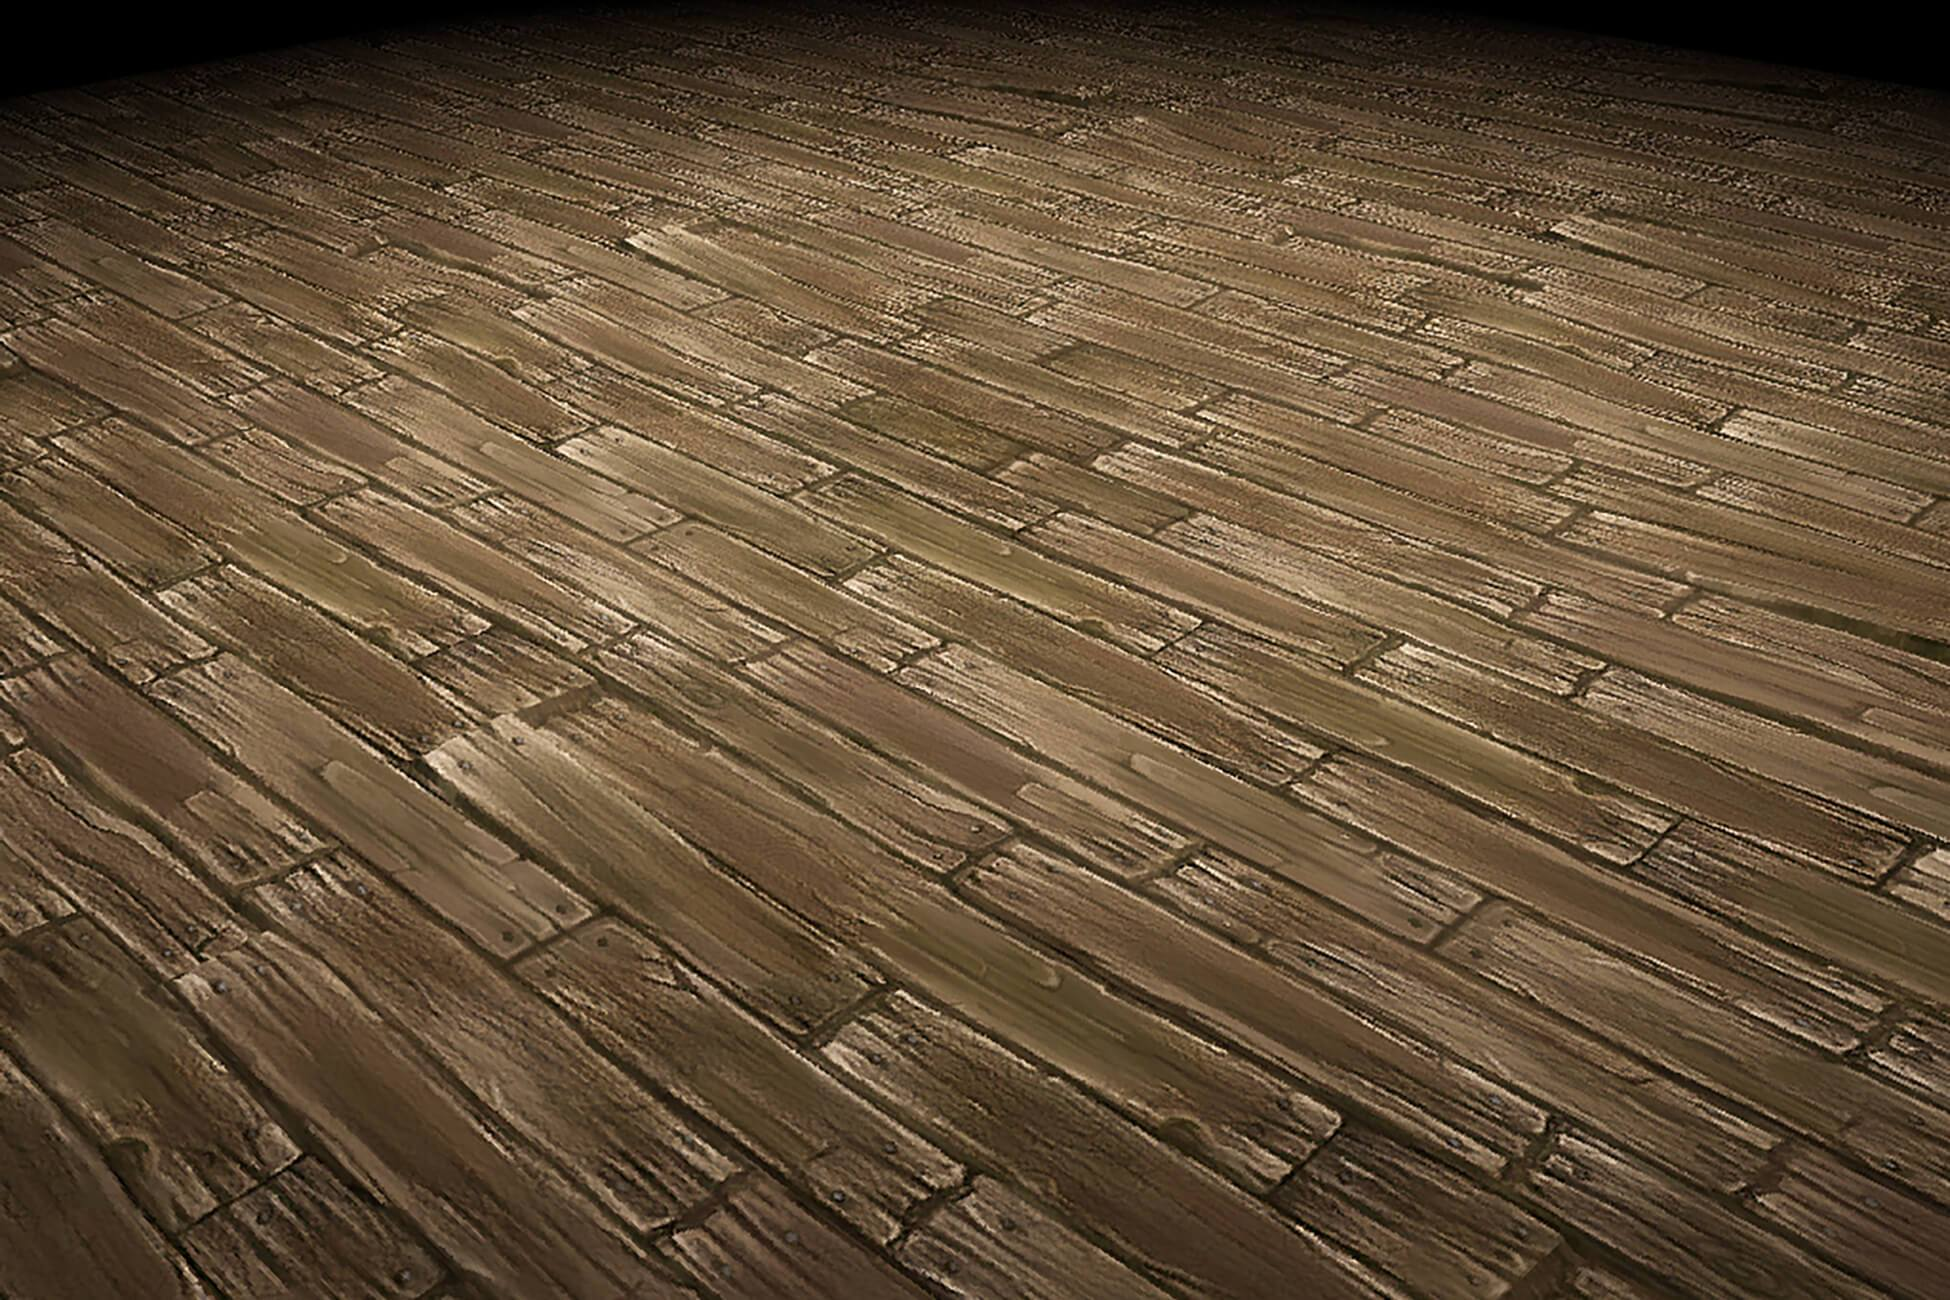 Textures - Wood Floor Old Planks Hand Painted Texture